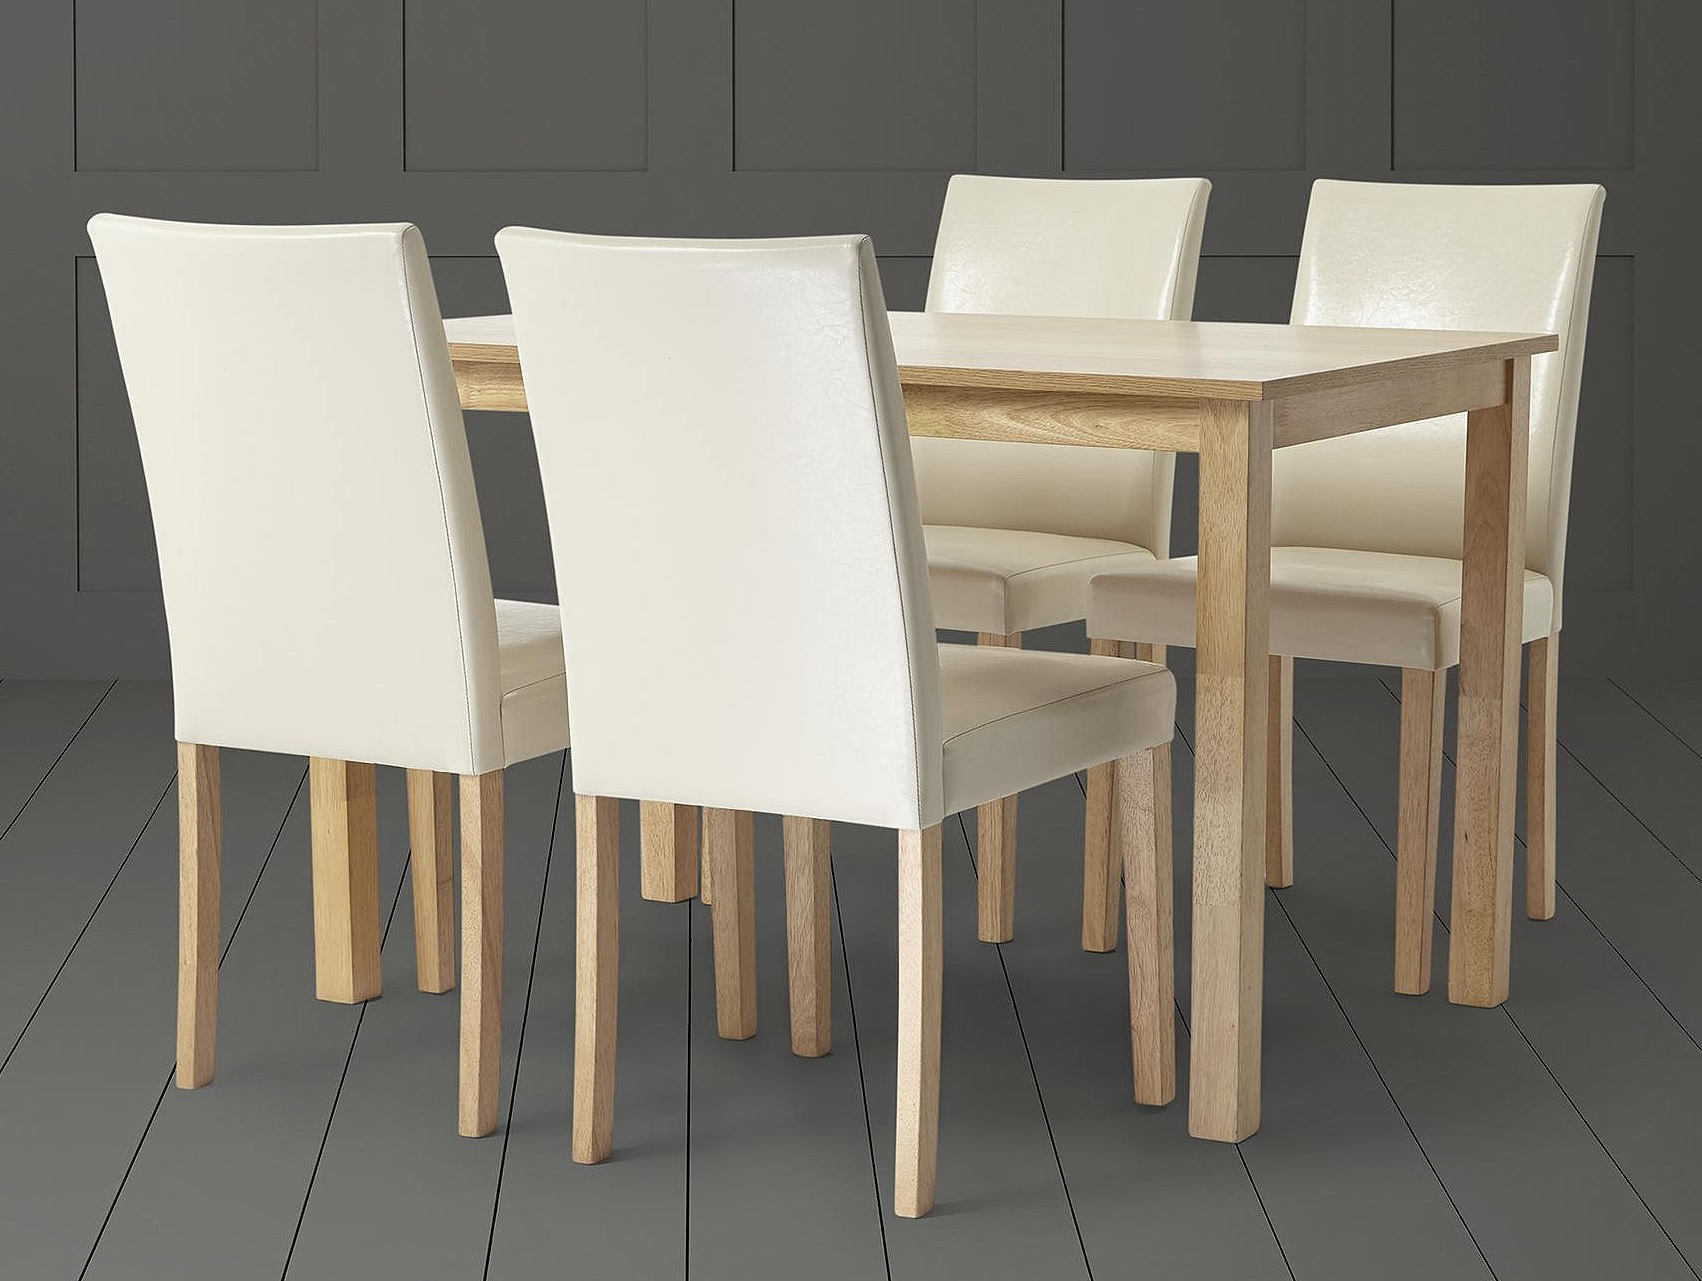 Tesco Claydon Oak Effect 4 Seat Dining Table Chair Set